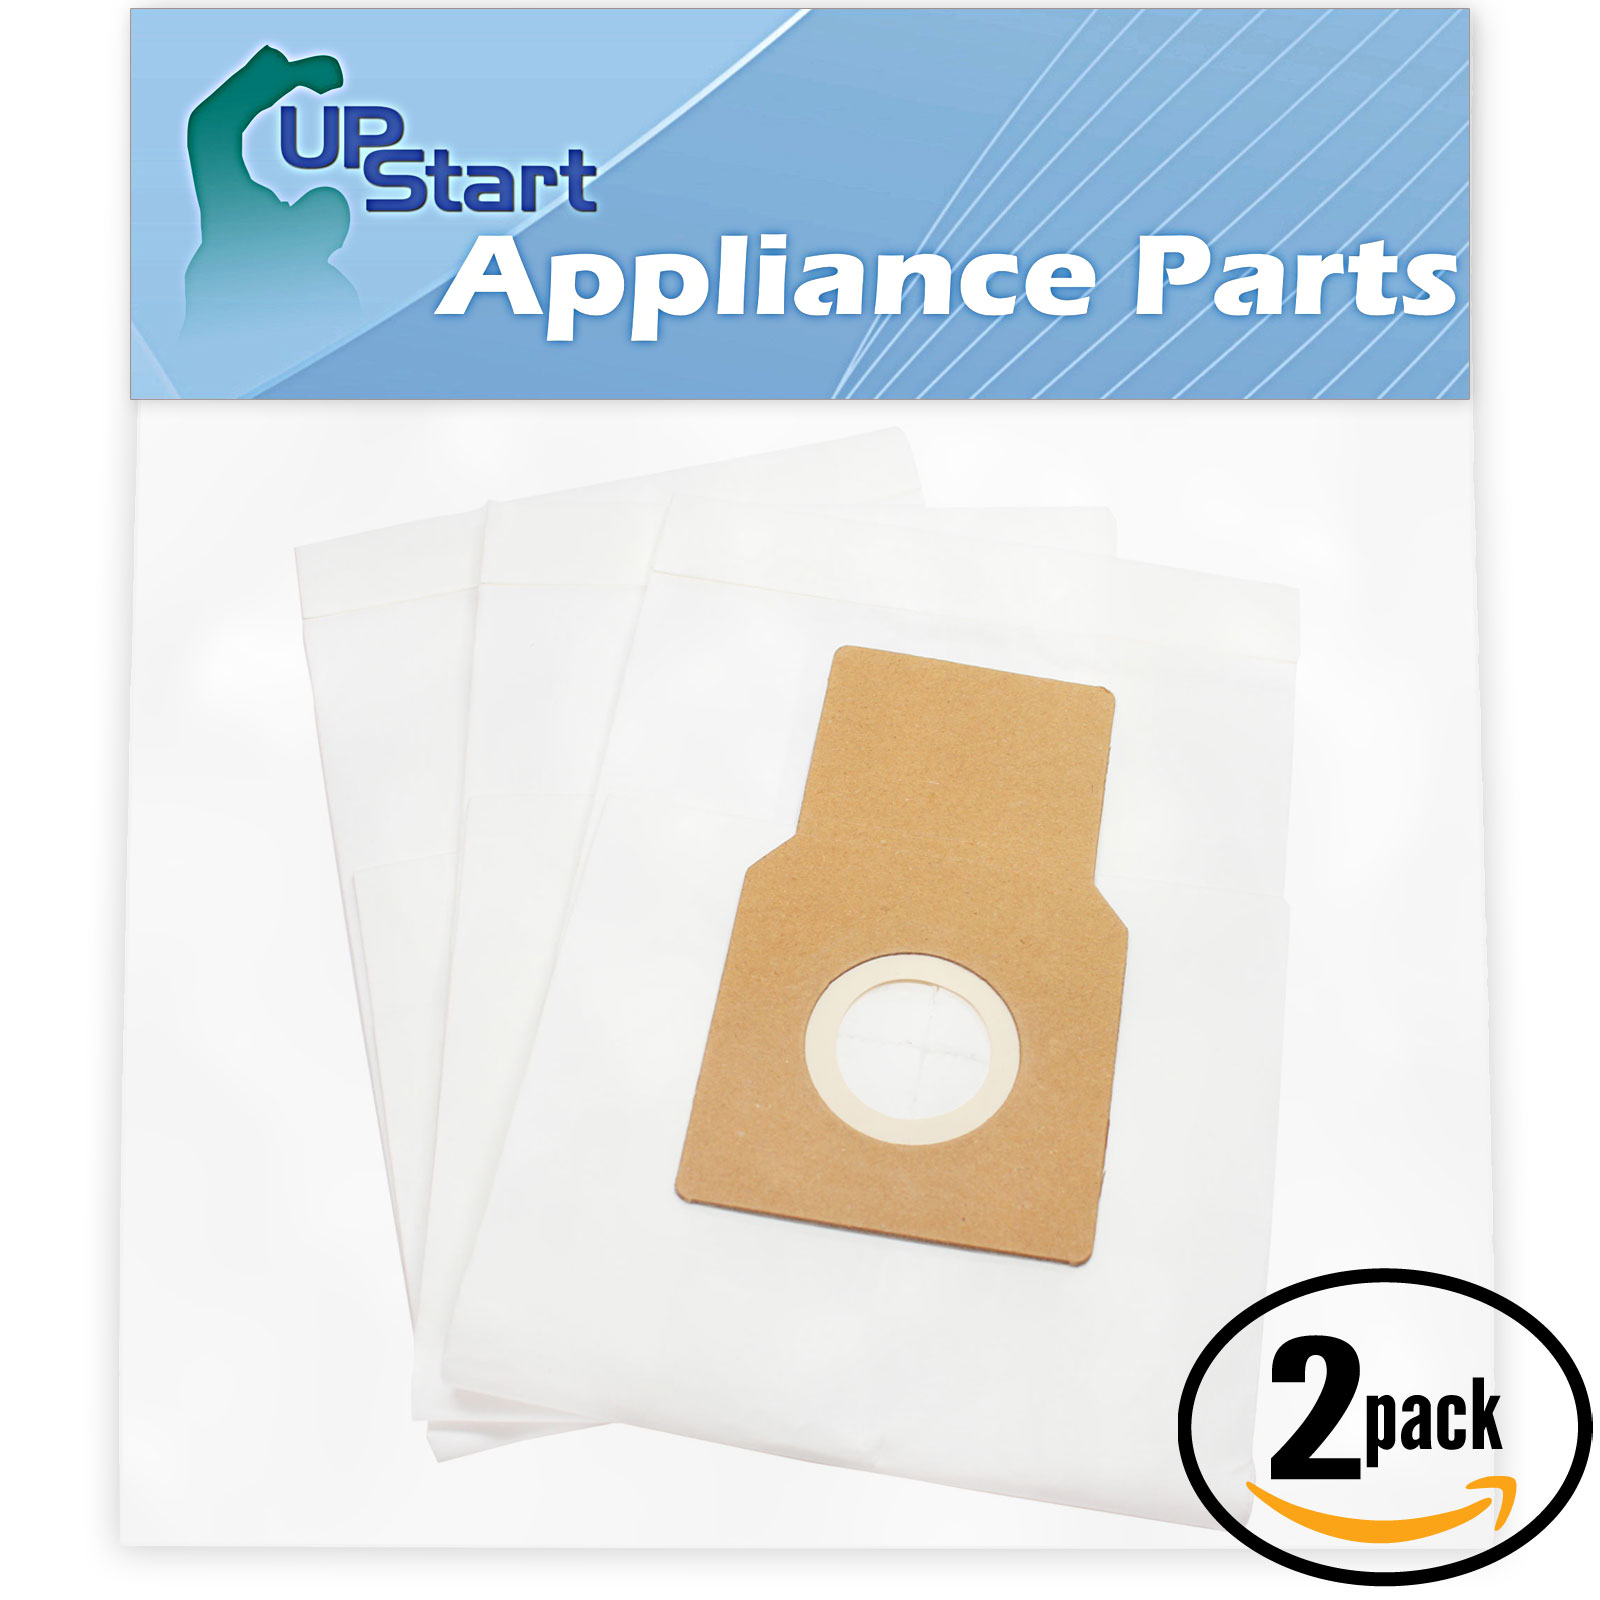 6 Replacement Kenmore 20-50690 Vacuum Bags  - Compatible Kenmore 50688, 50690, Type O, Type U Vacuum Bags (2-Pack, 3 Bags Per Pack)